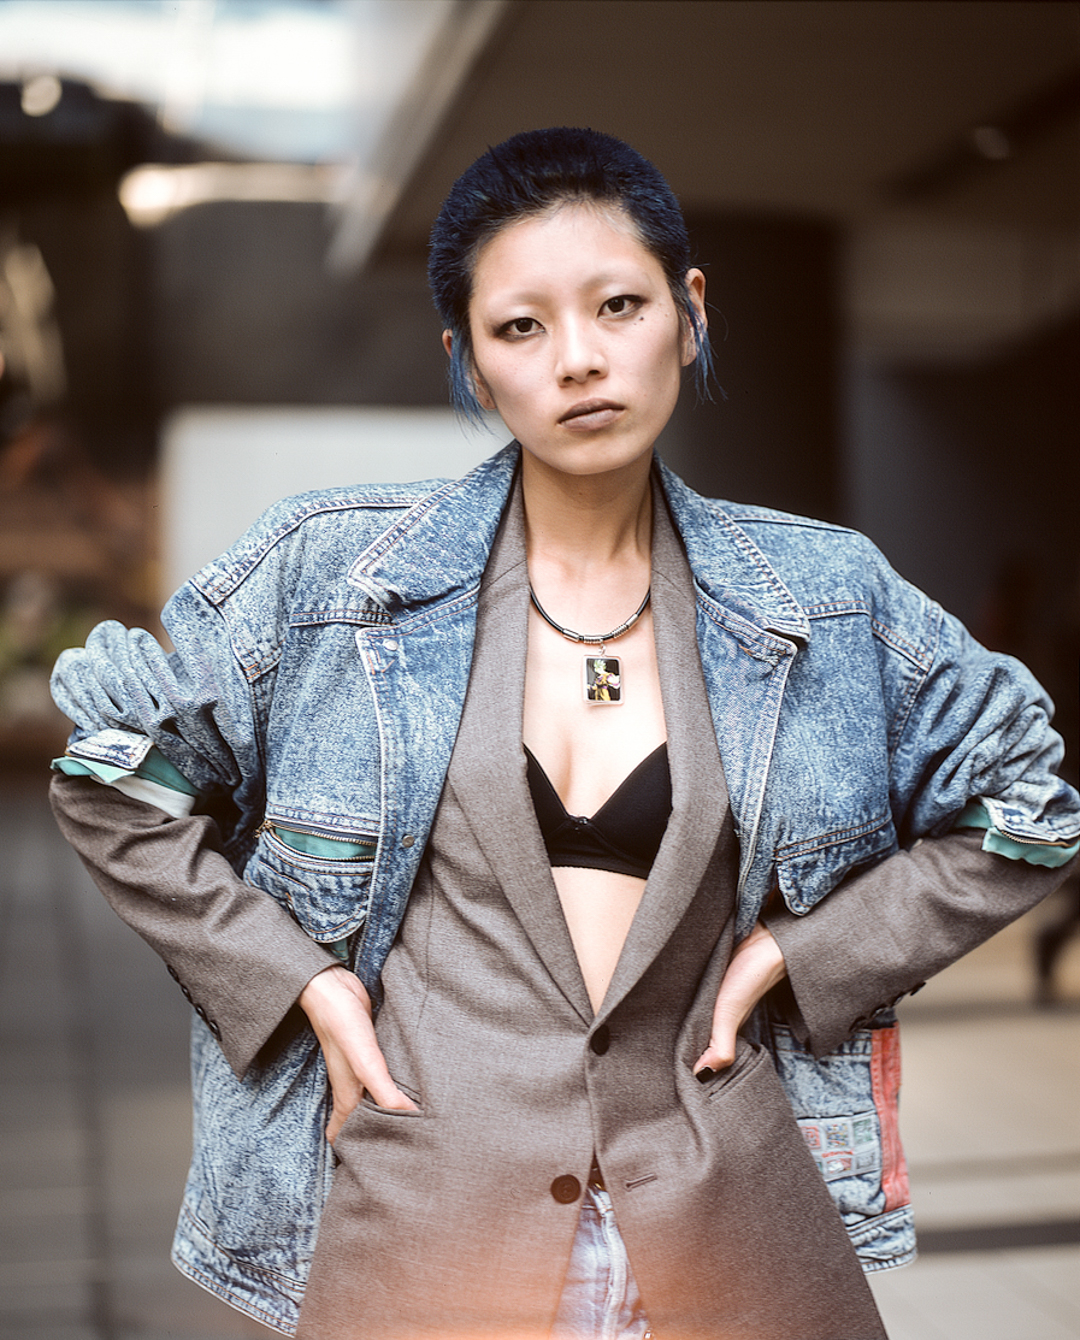 Yuna with a denim jacket over a suit jacket in Shibuya